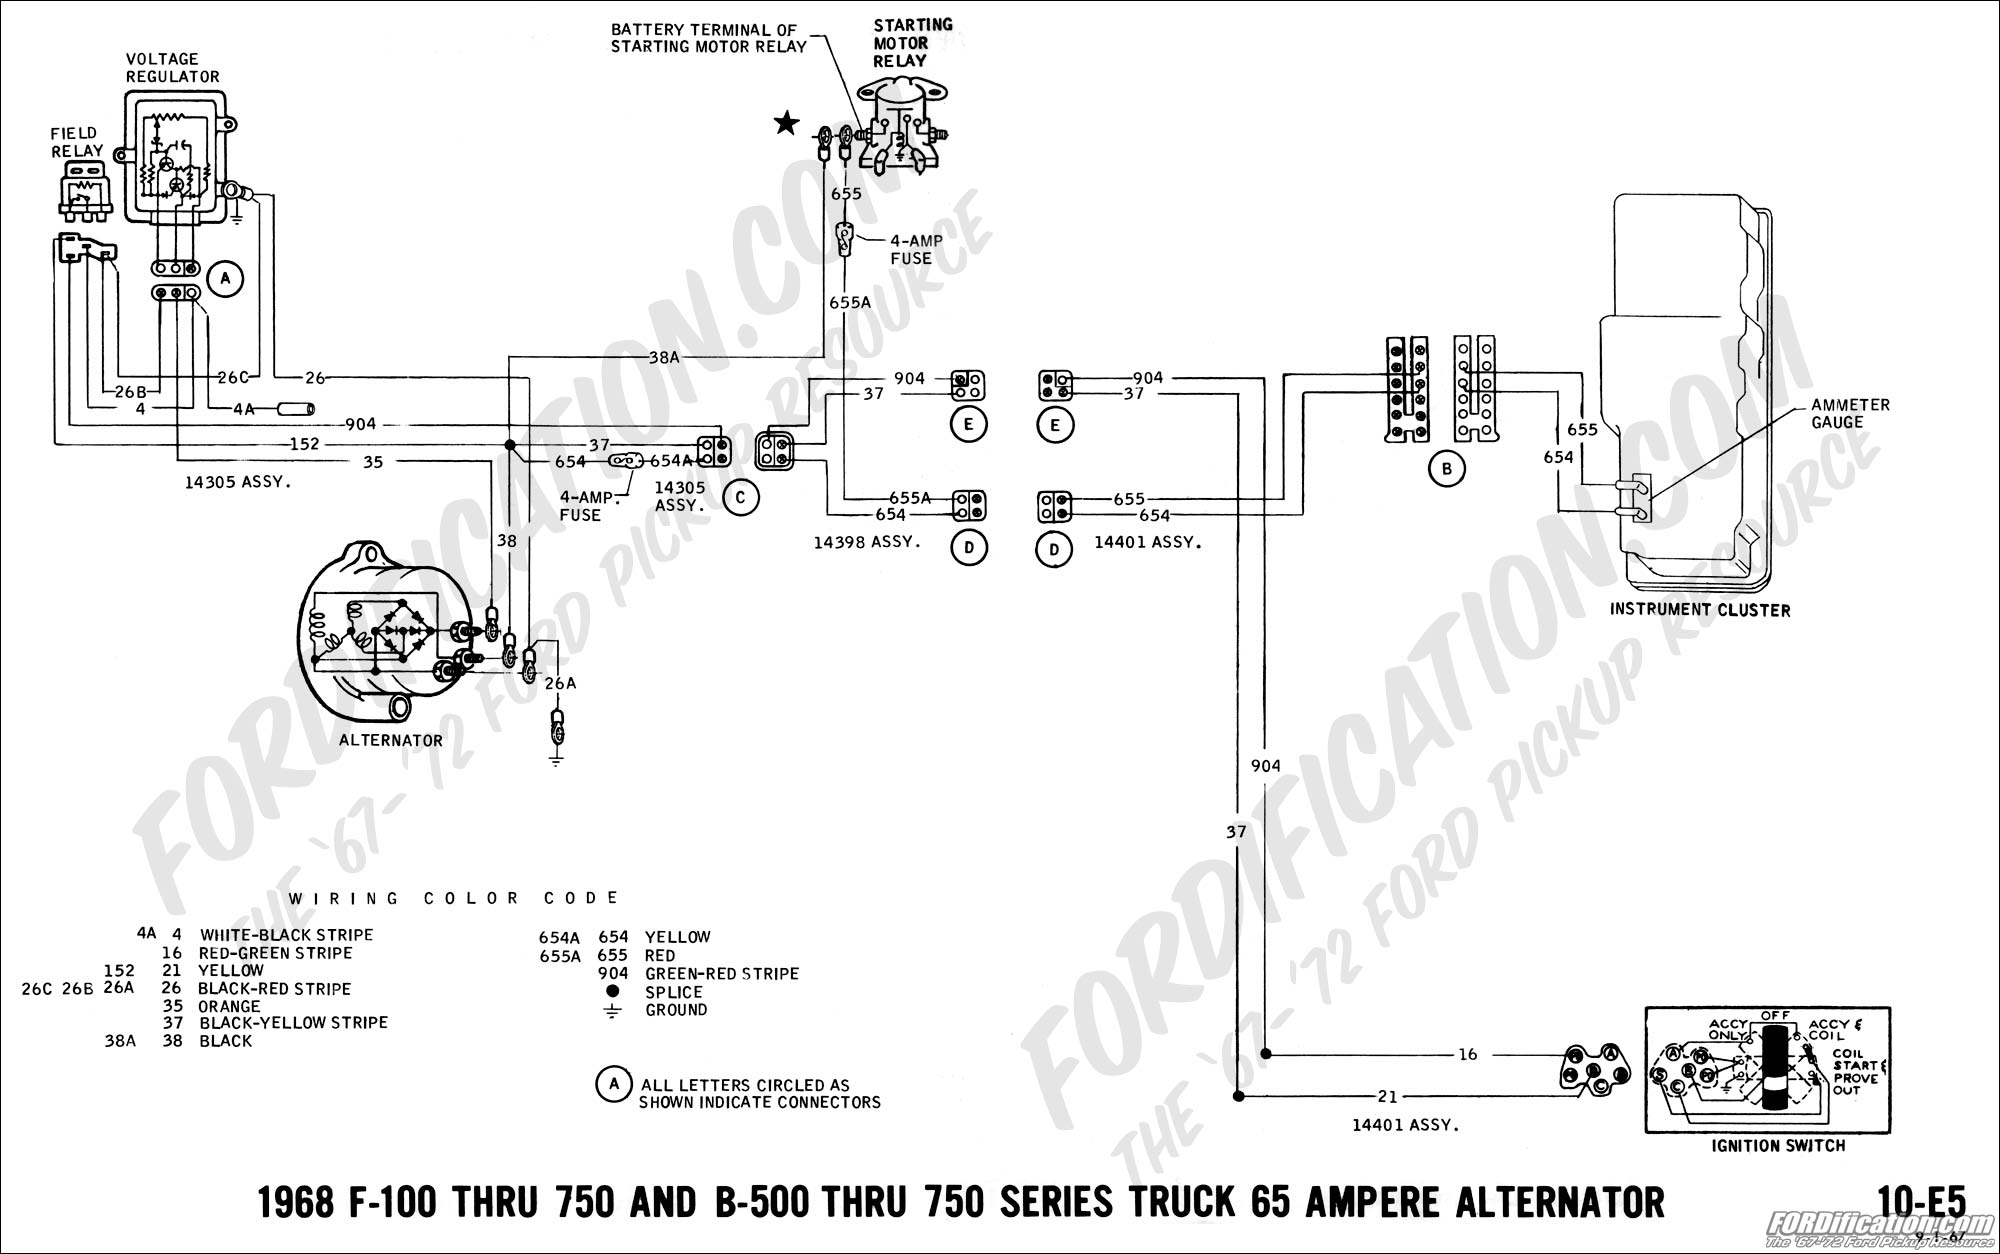 71 Maverick Turn Signal Wiring Diagram Schematics Diagrams 70 Vw Free Picture Schematic F250 U2022 Rh Schoosretailstores Com 1976 Chevrolet